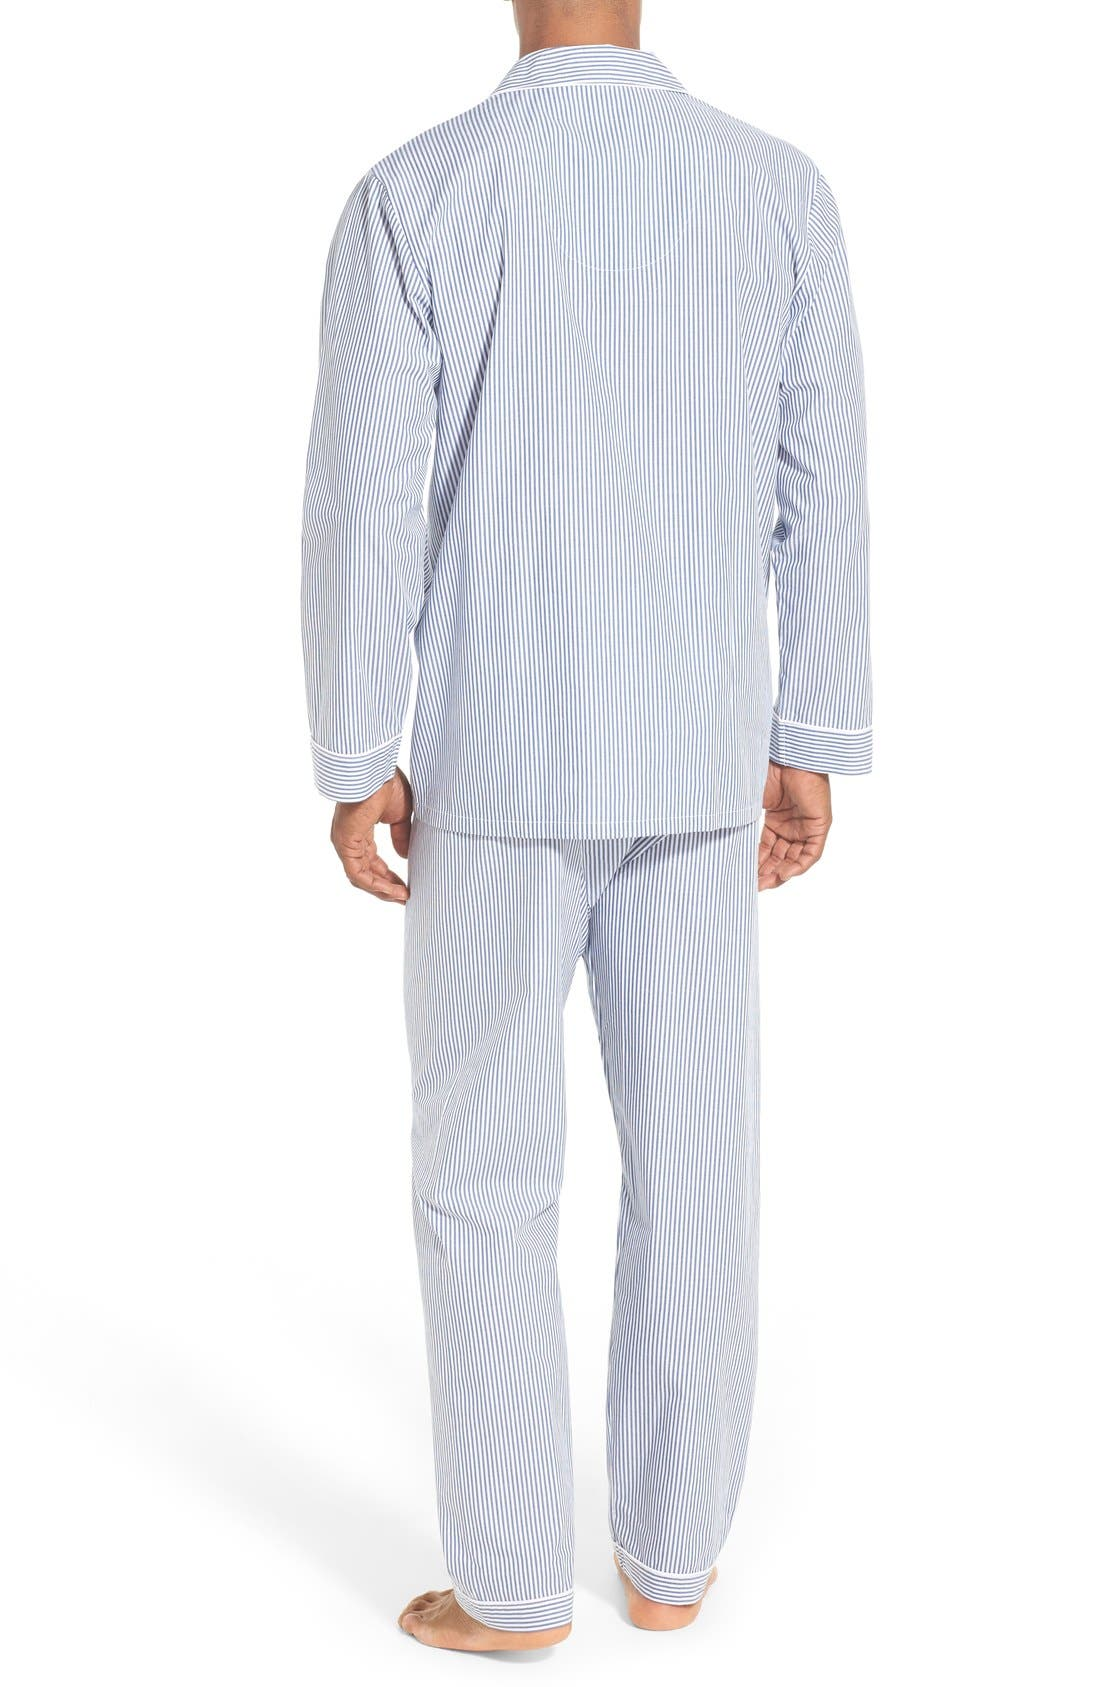 Stripe Cotton Pajamas,                             Alternate thumbnail 2, color,                             Navy